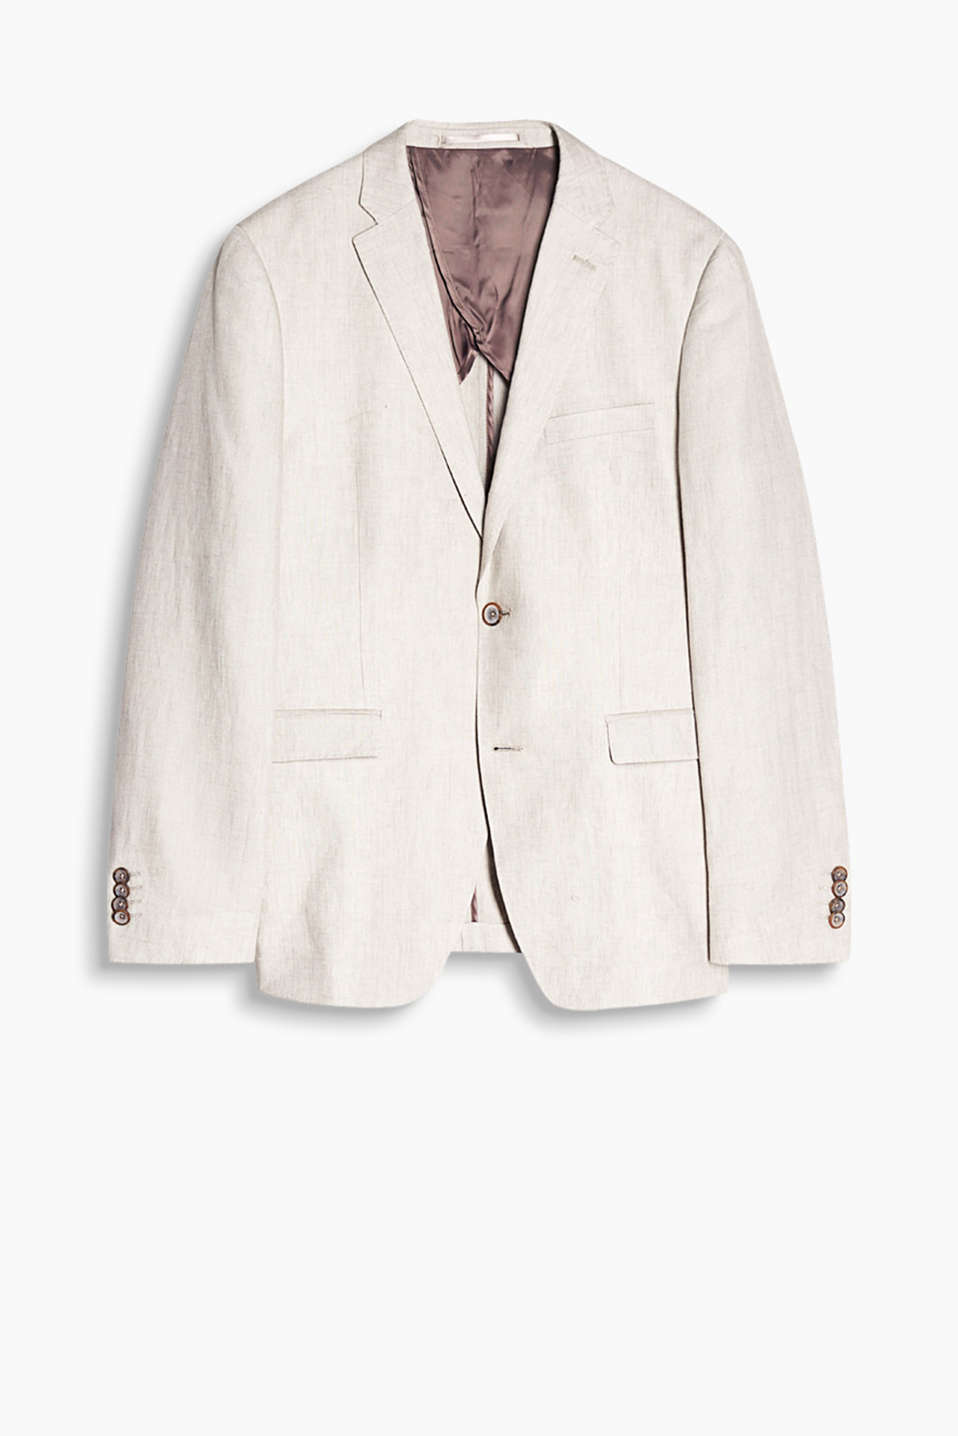 Jacket in a summery style, made of pure linen with a cool texture